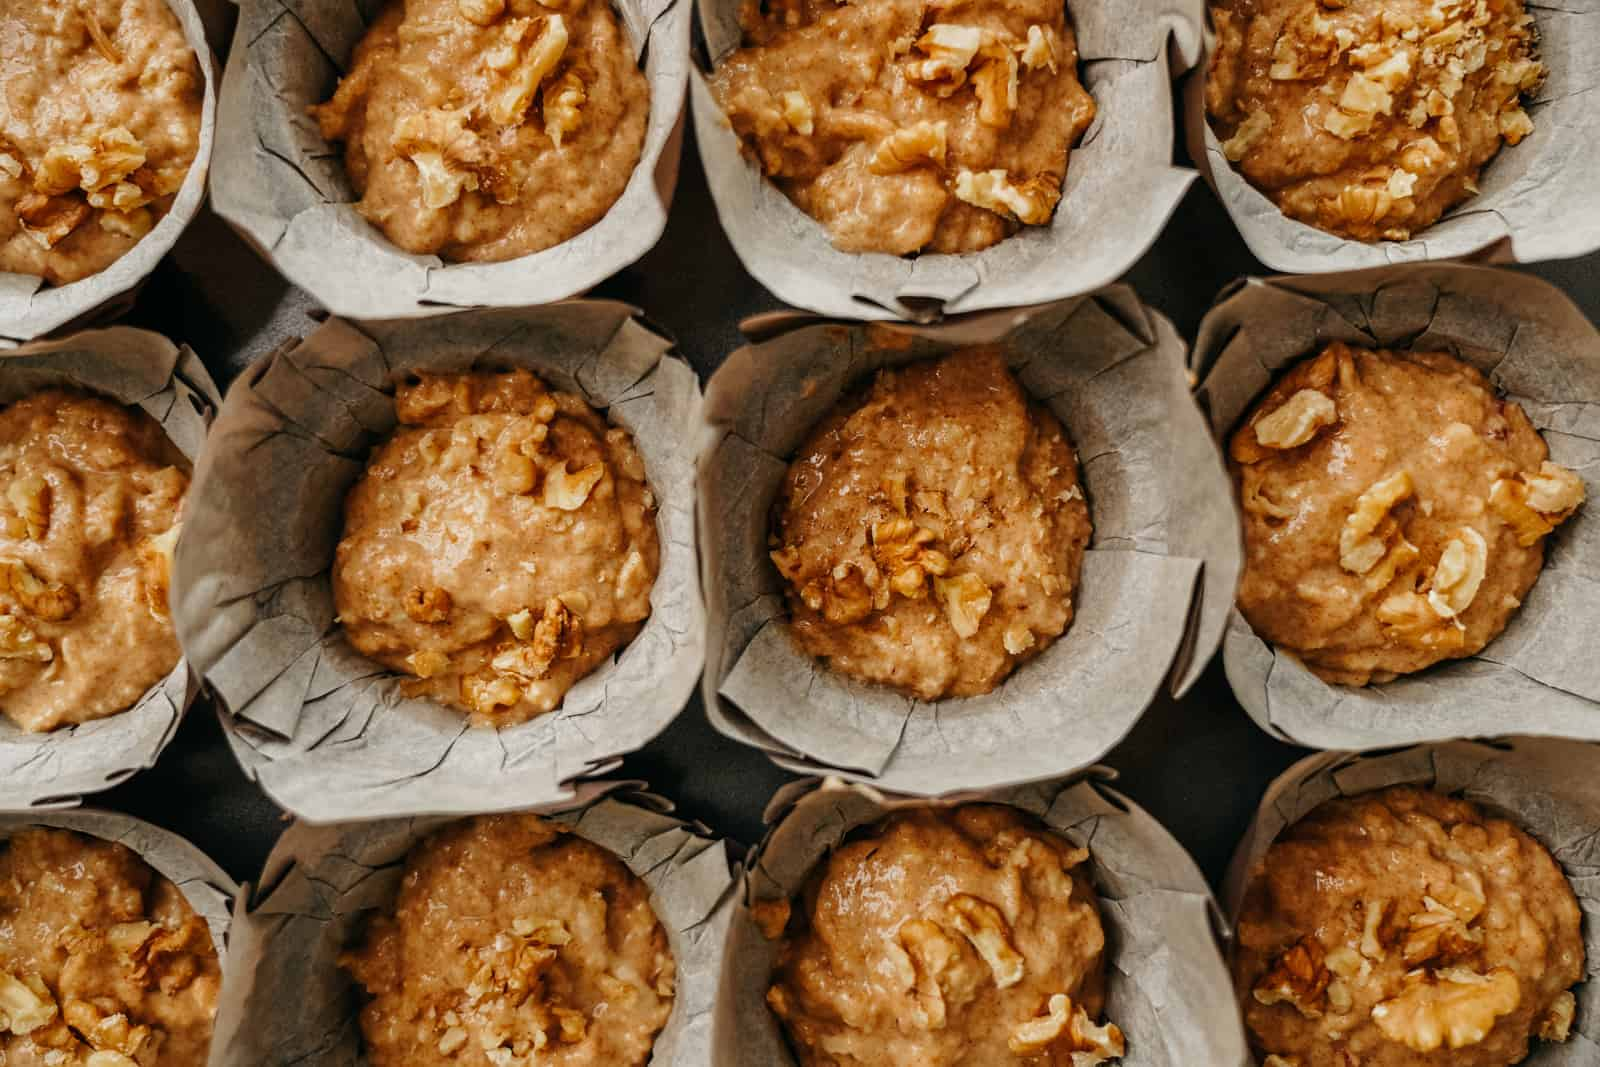 A dozen Vegan Apple Cinnamon Muffins all lined up in muffin wrappers on counter.